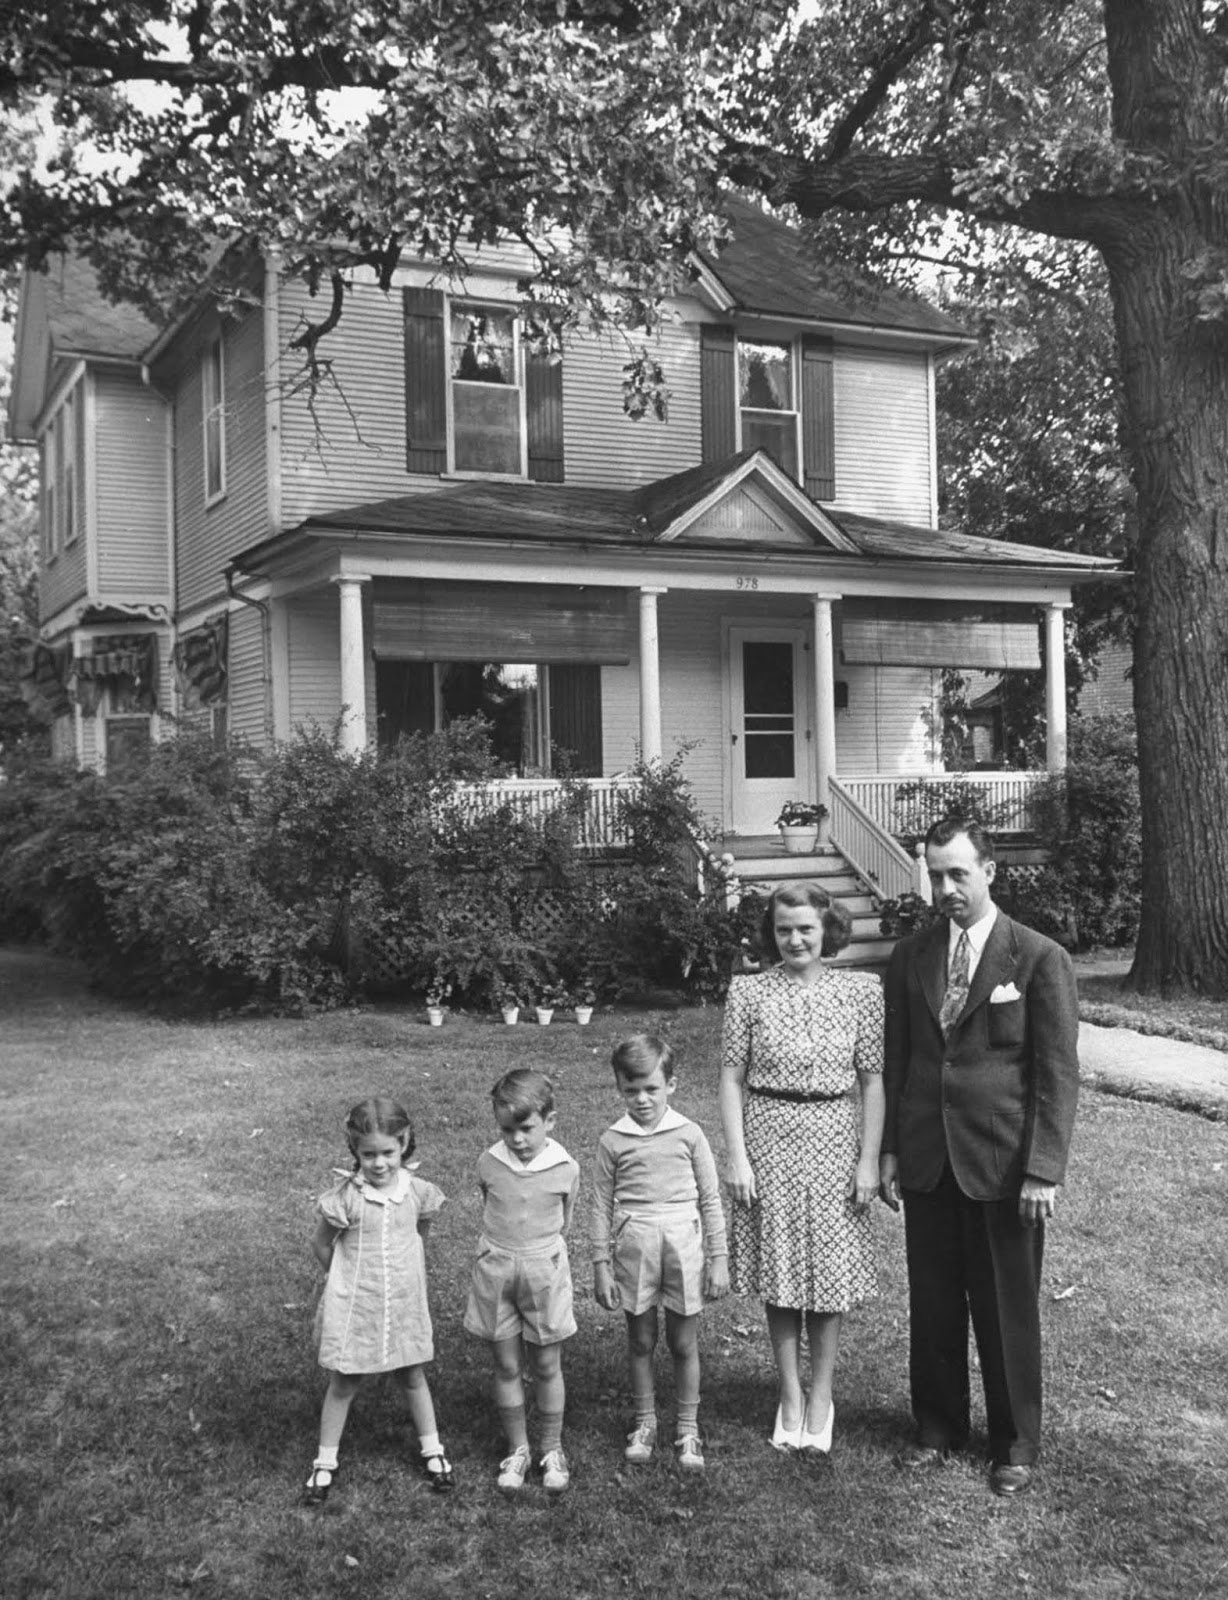 Jane posing with her husband of 11 years, Gilbert, and their three kids Pamela, 4, Tony, 5, and Peter, 7, in front of the large two-story house they lease.